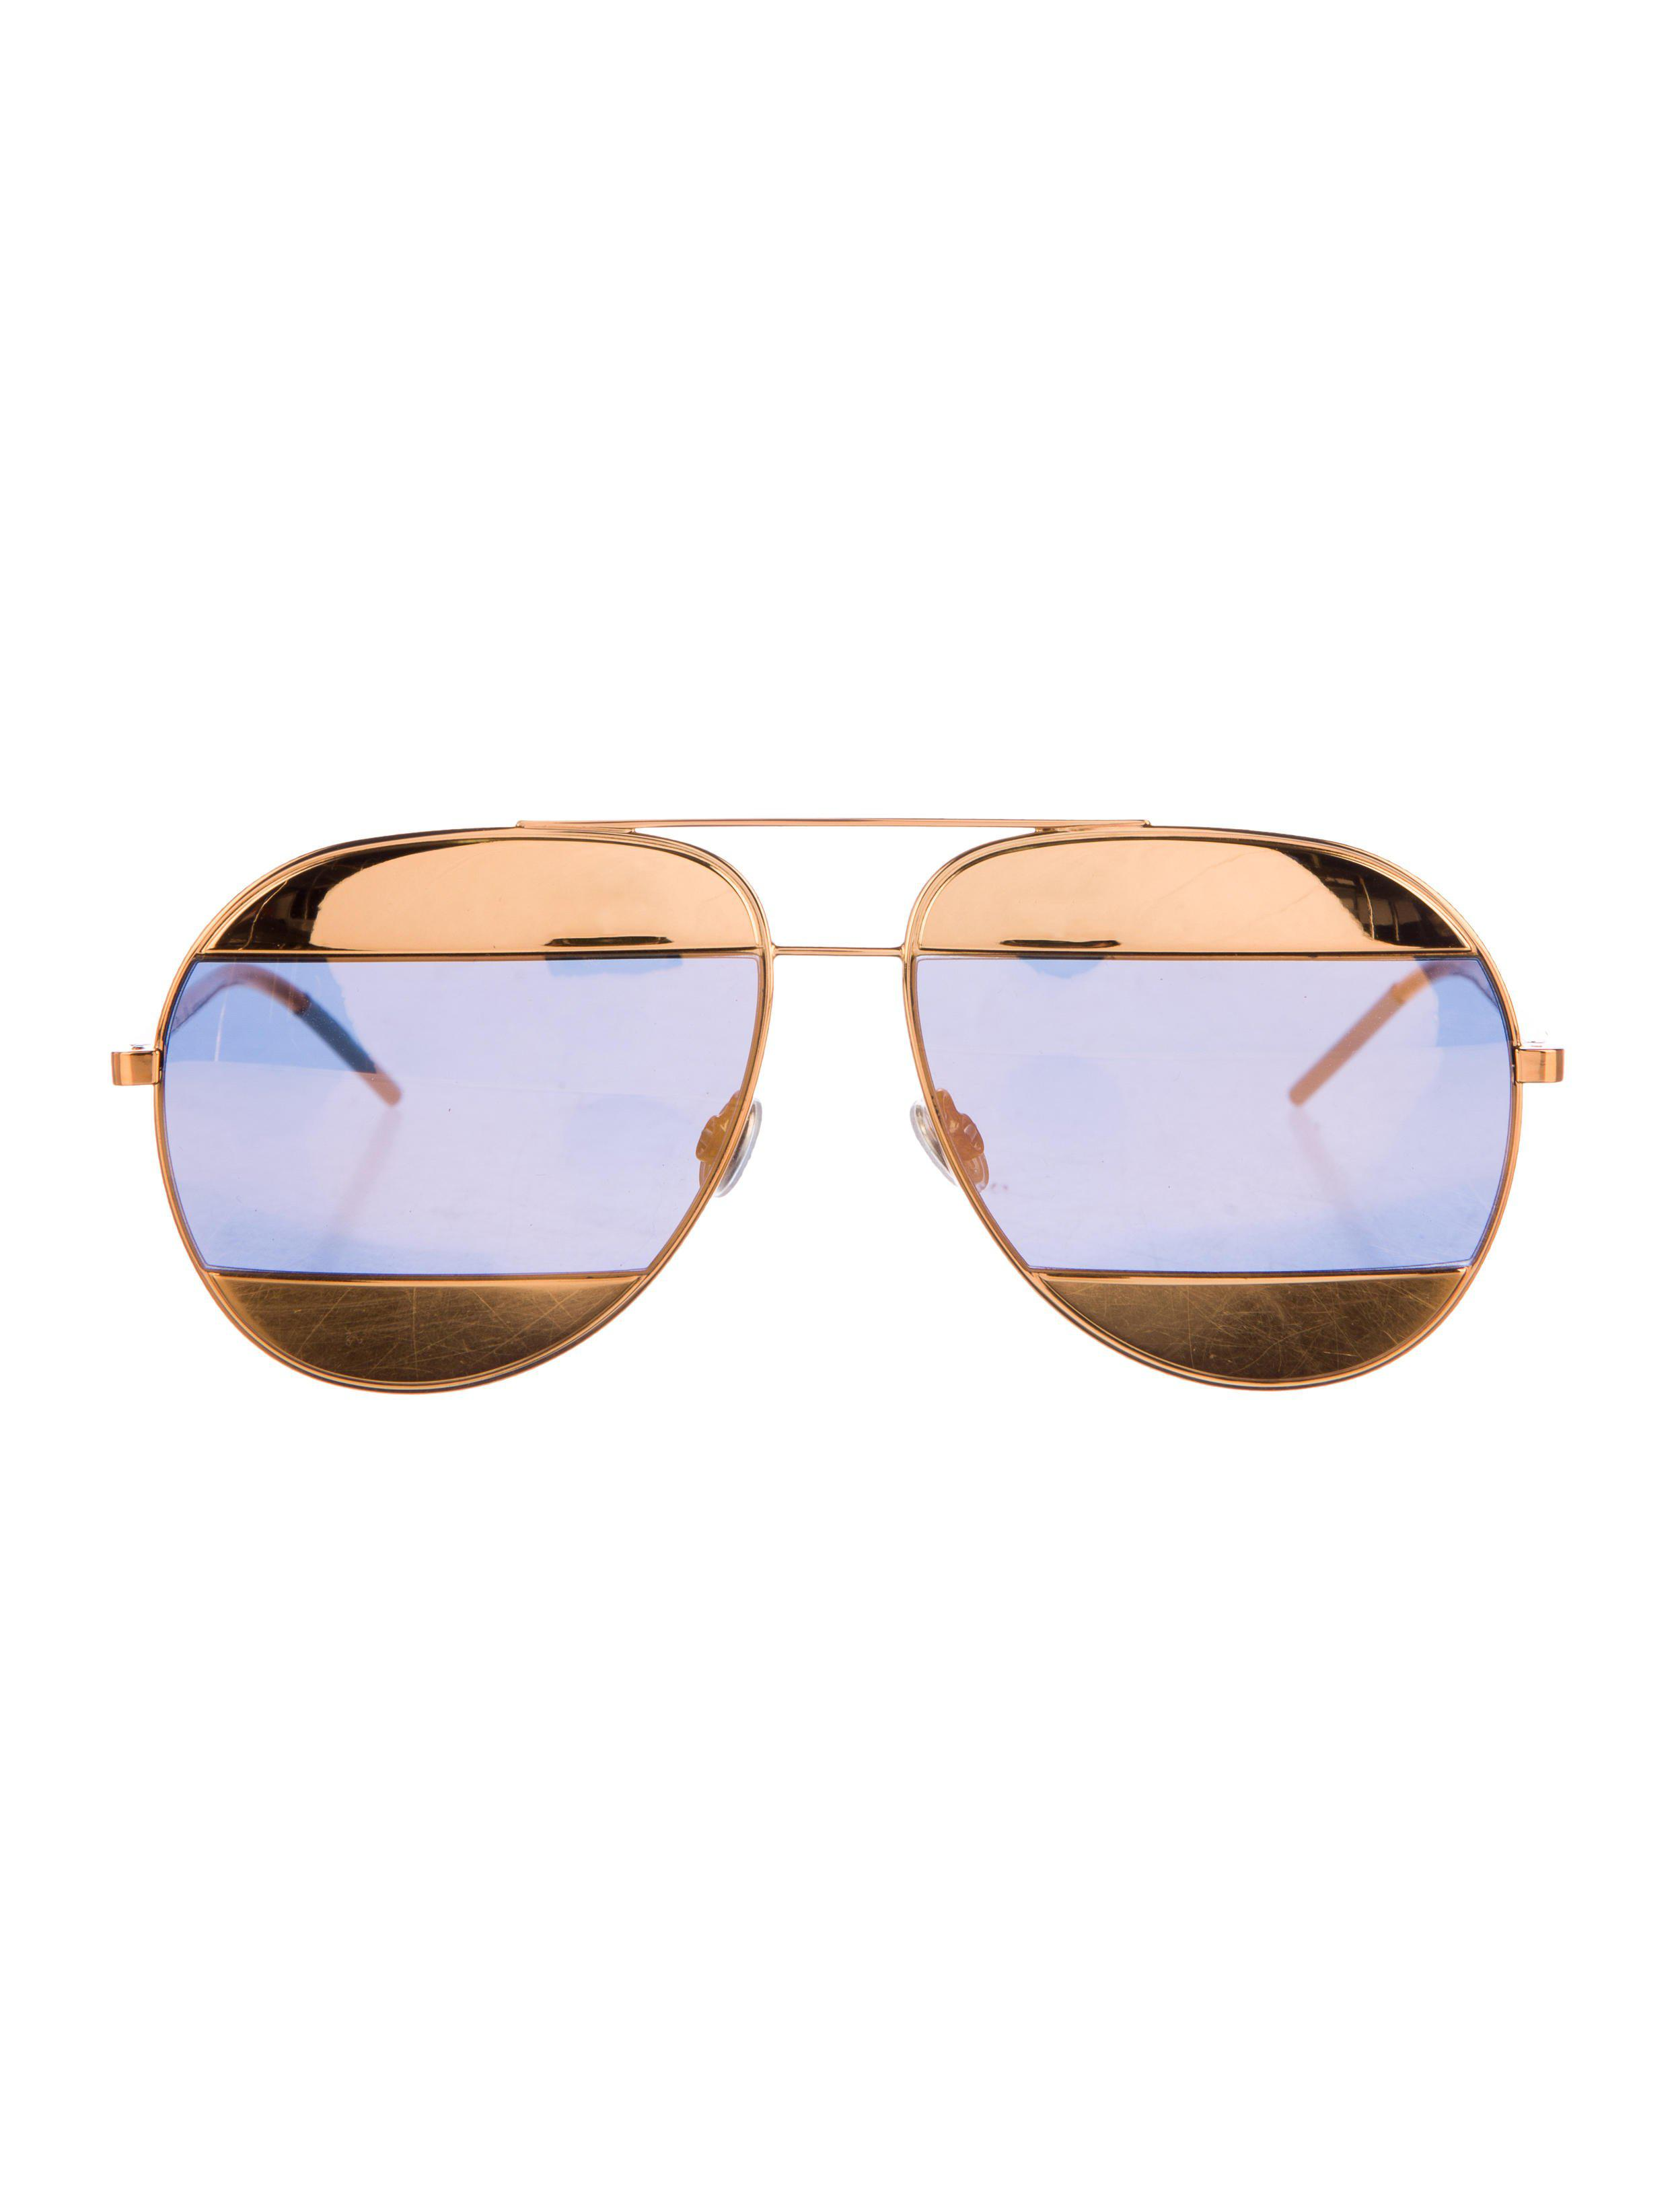 f07428af2a559 Lyst - Dior Split 1 Aviator Sunglasses Gold in Metallic